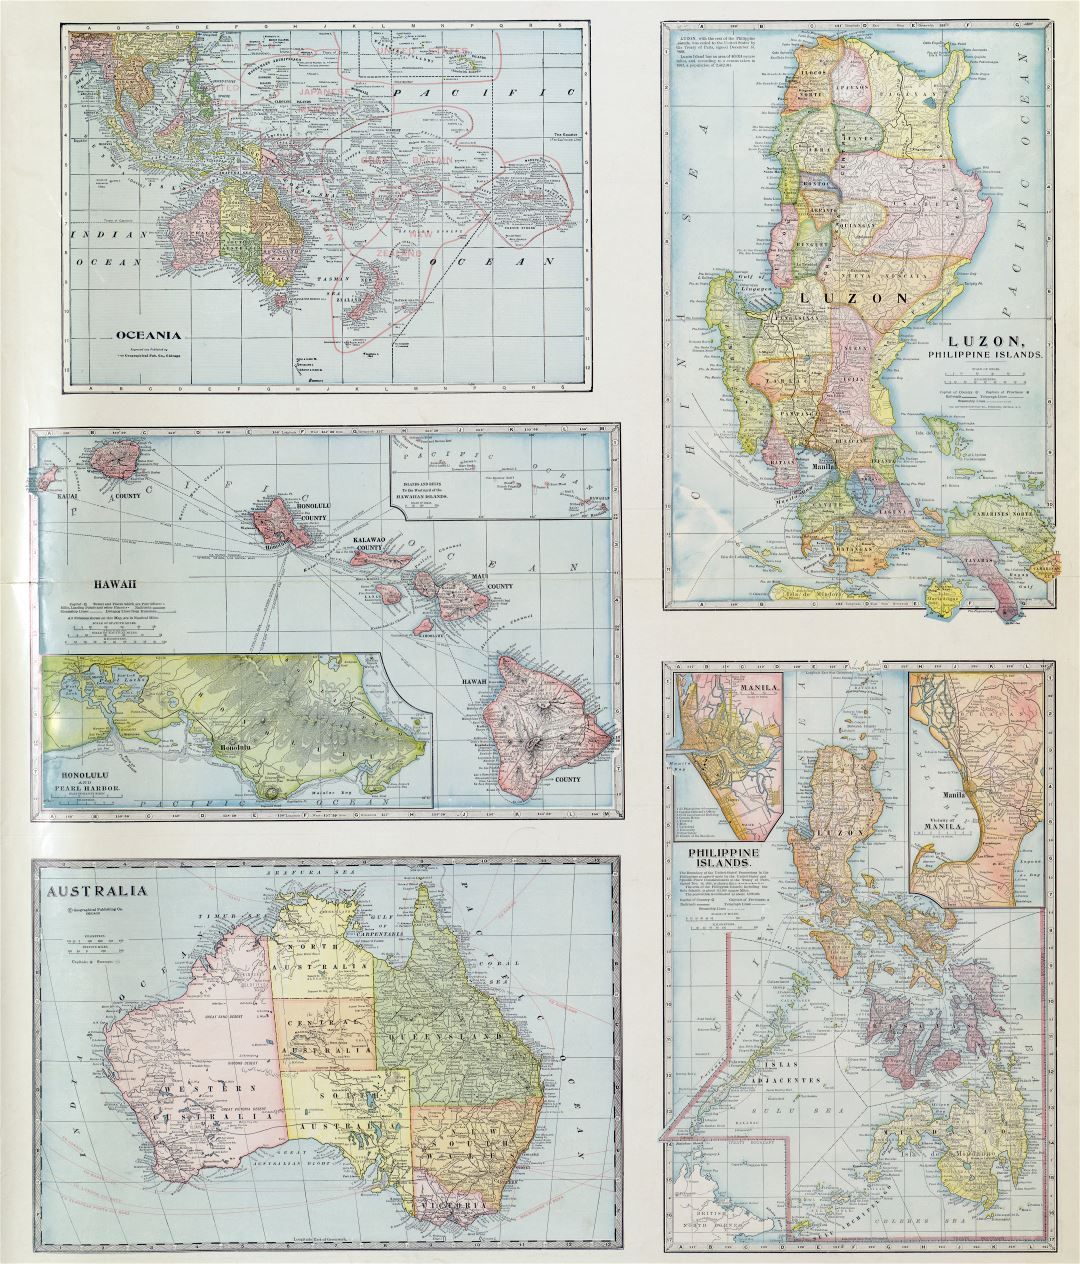 Large scale old political map of featuring countries of the Far East with the marks of cities and other marks - 1932 - (2)